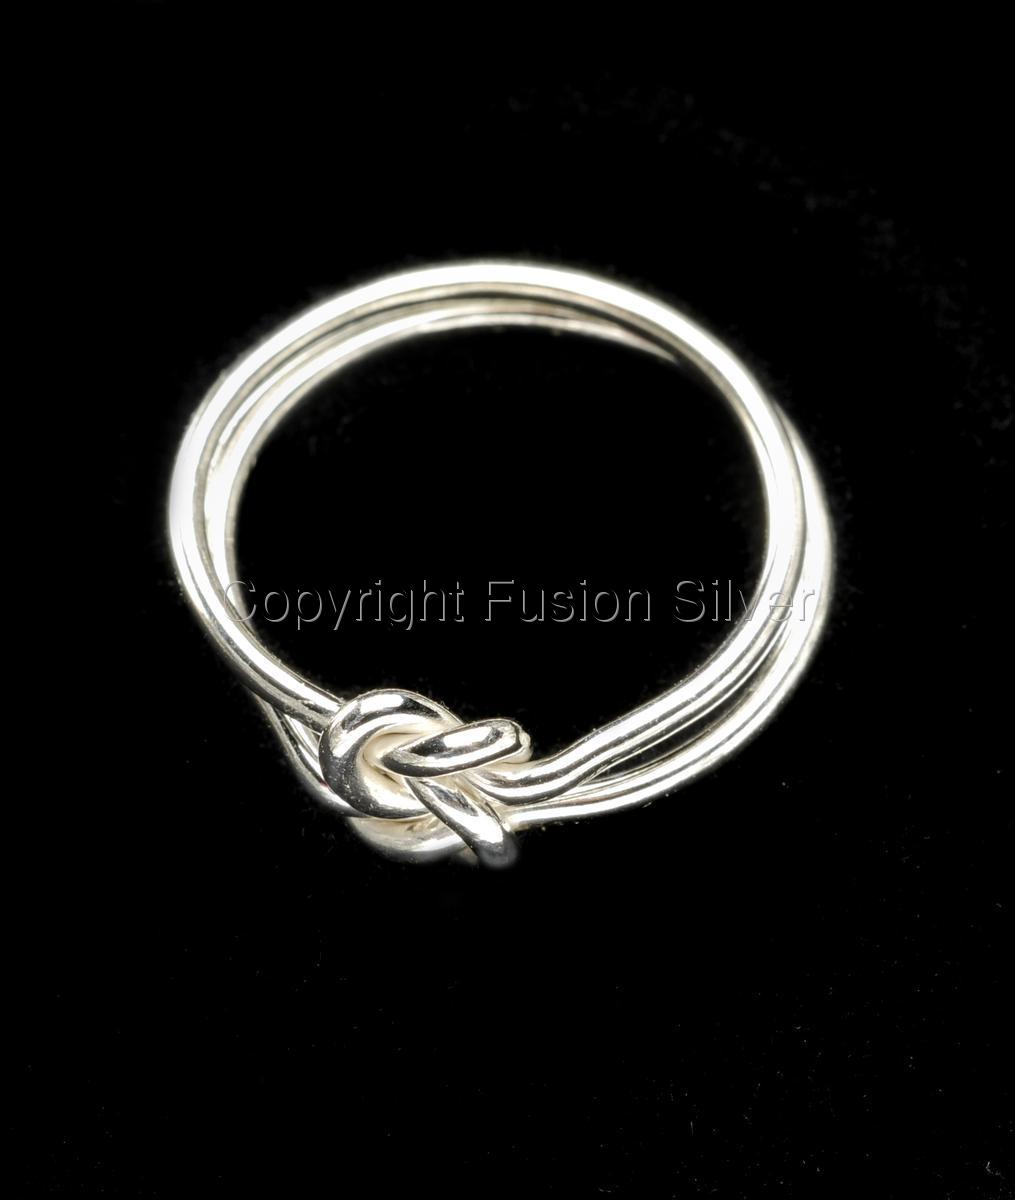 True Love knot ring (large view)